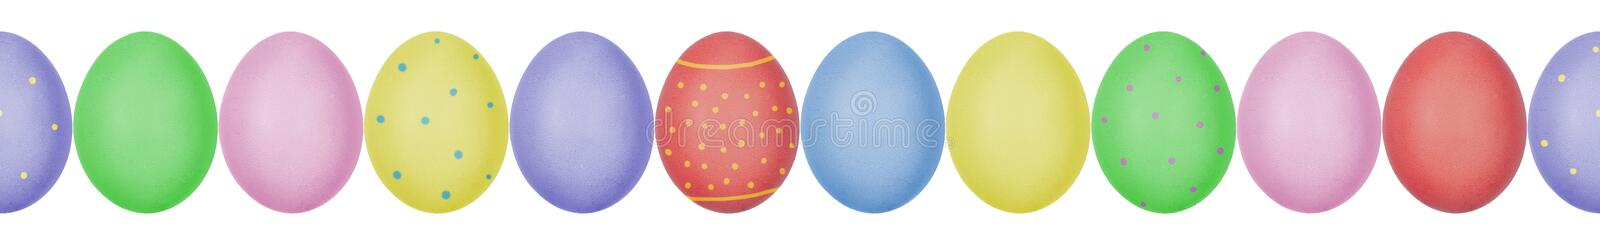 Close up photo of colorful painted Easter eggs with eggshell texture arranged in a row. Seamless pattern. Isolated on white background. Can be used as a banner stock photo